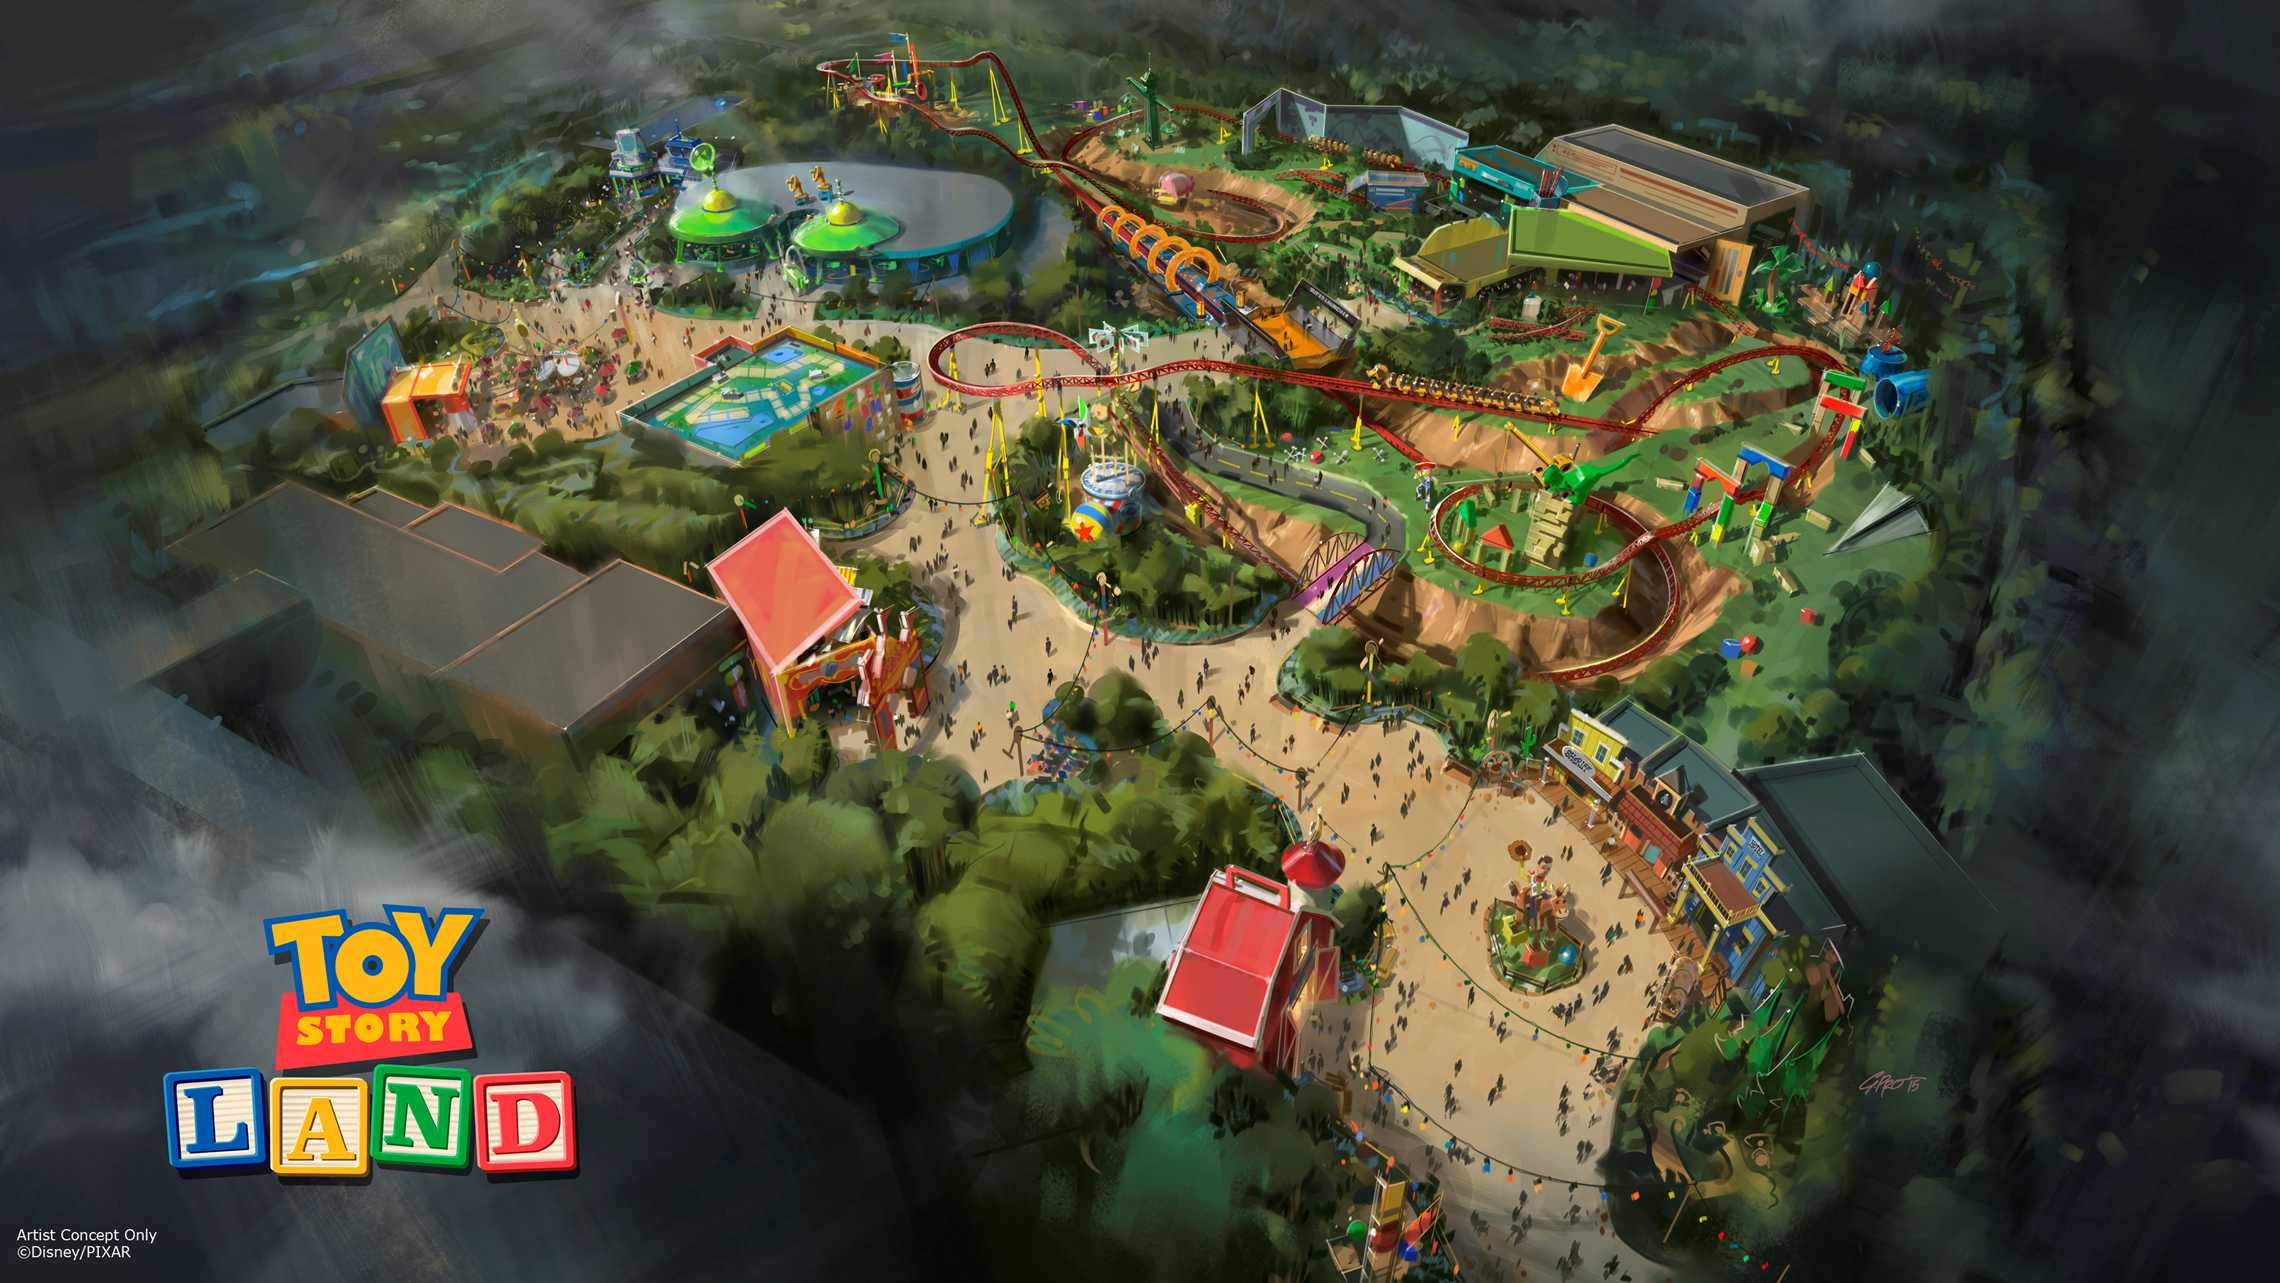 Toy Story Land concept art August 2015